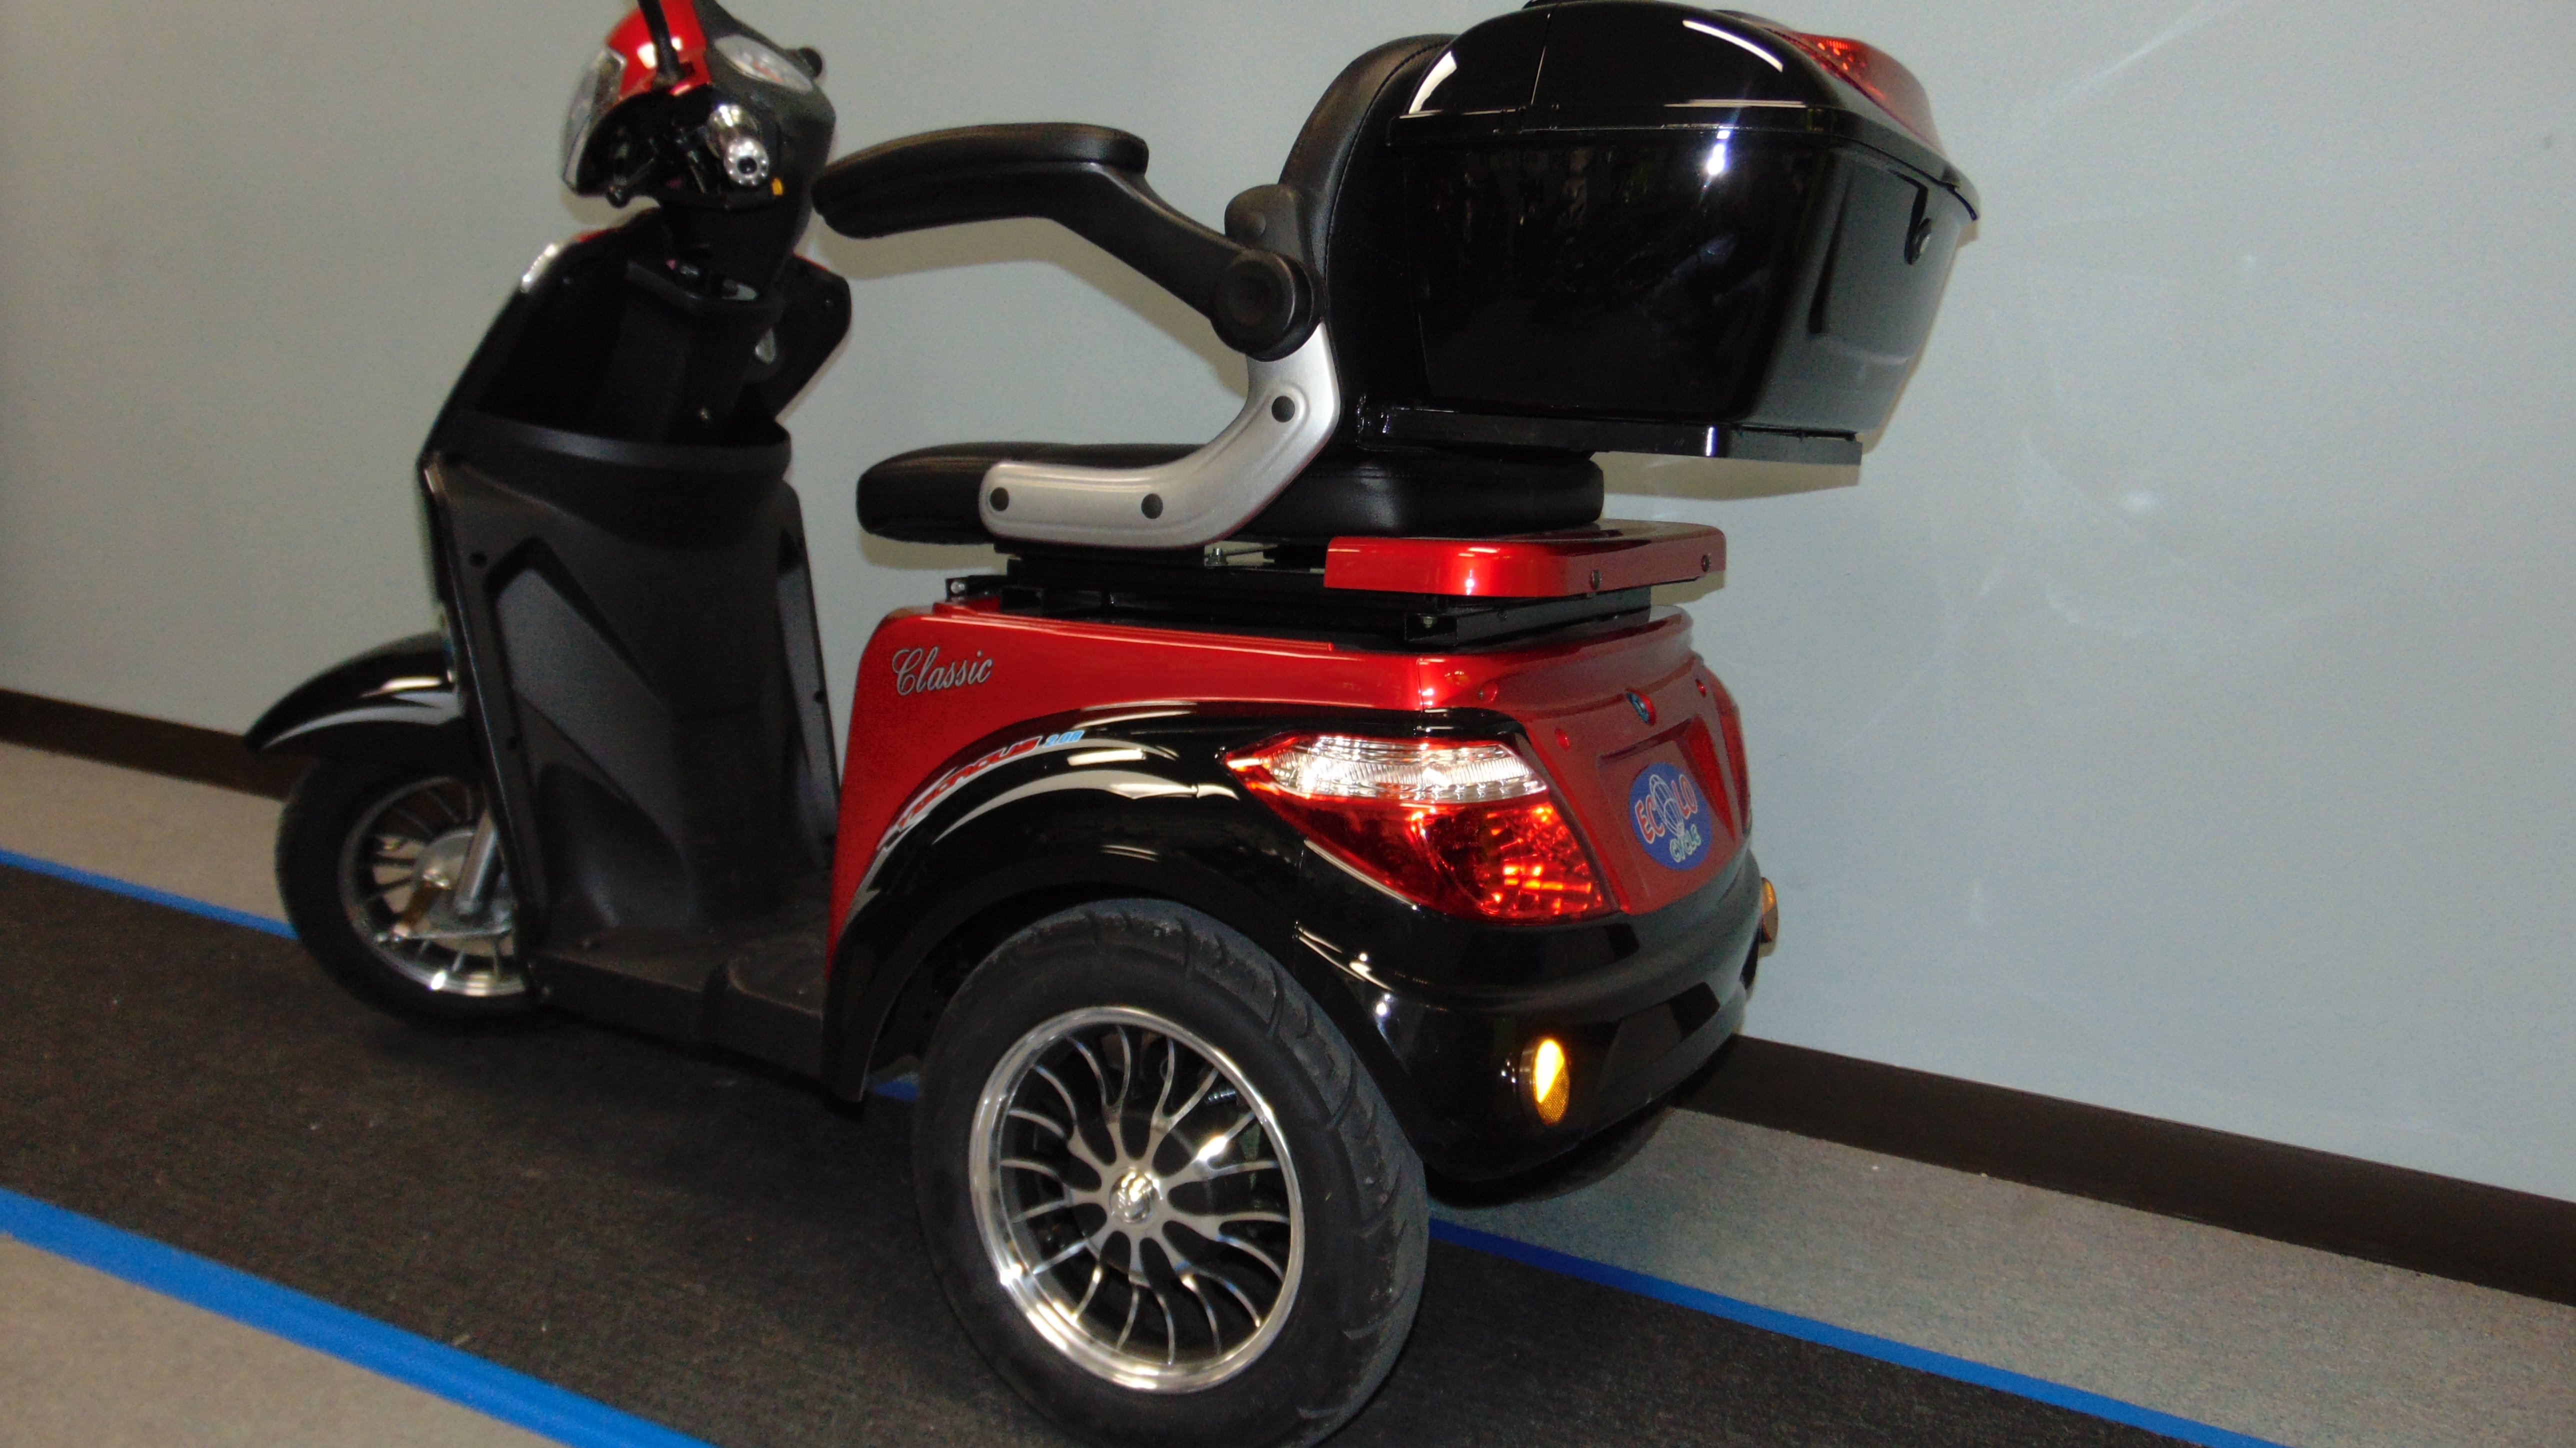 Ecolocycle Et3 Classic Electric Scooter